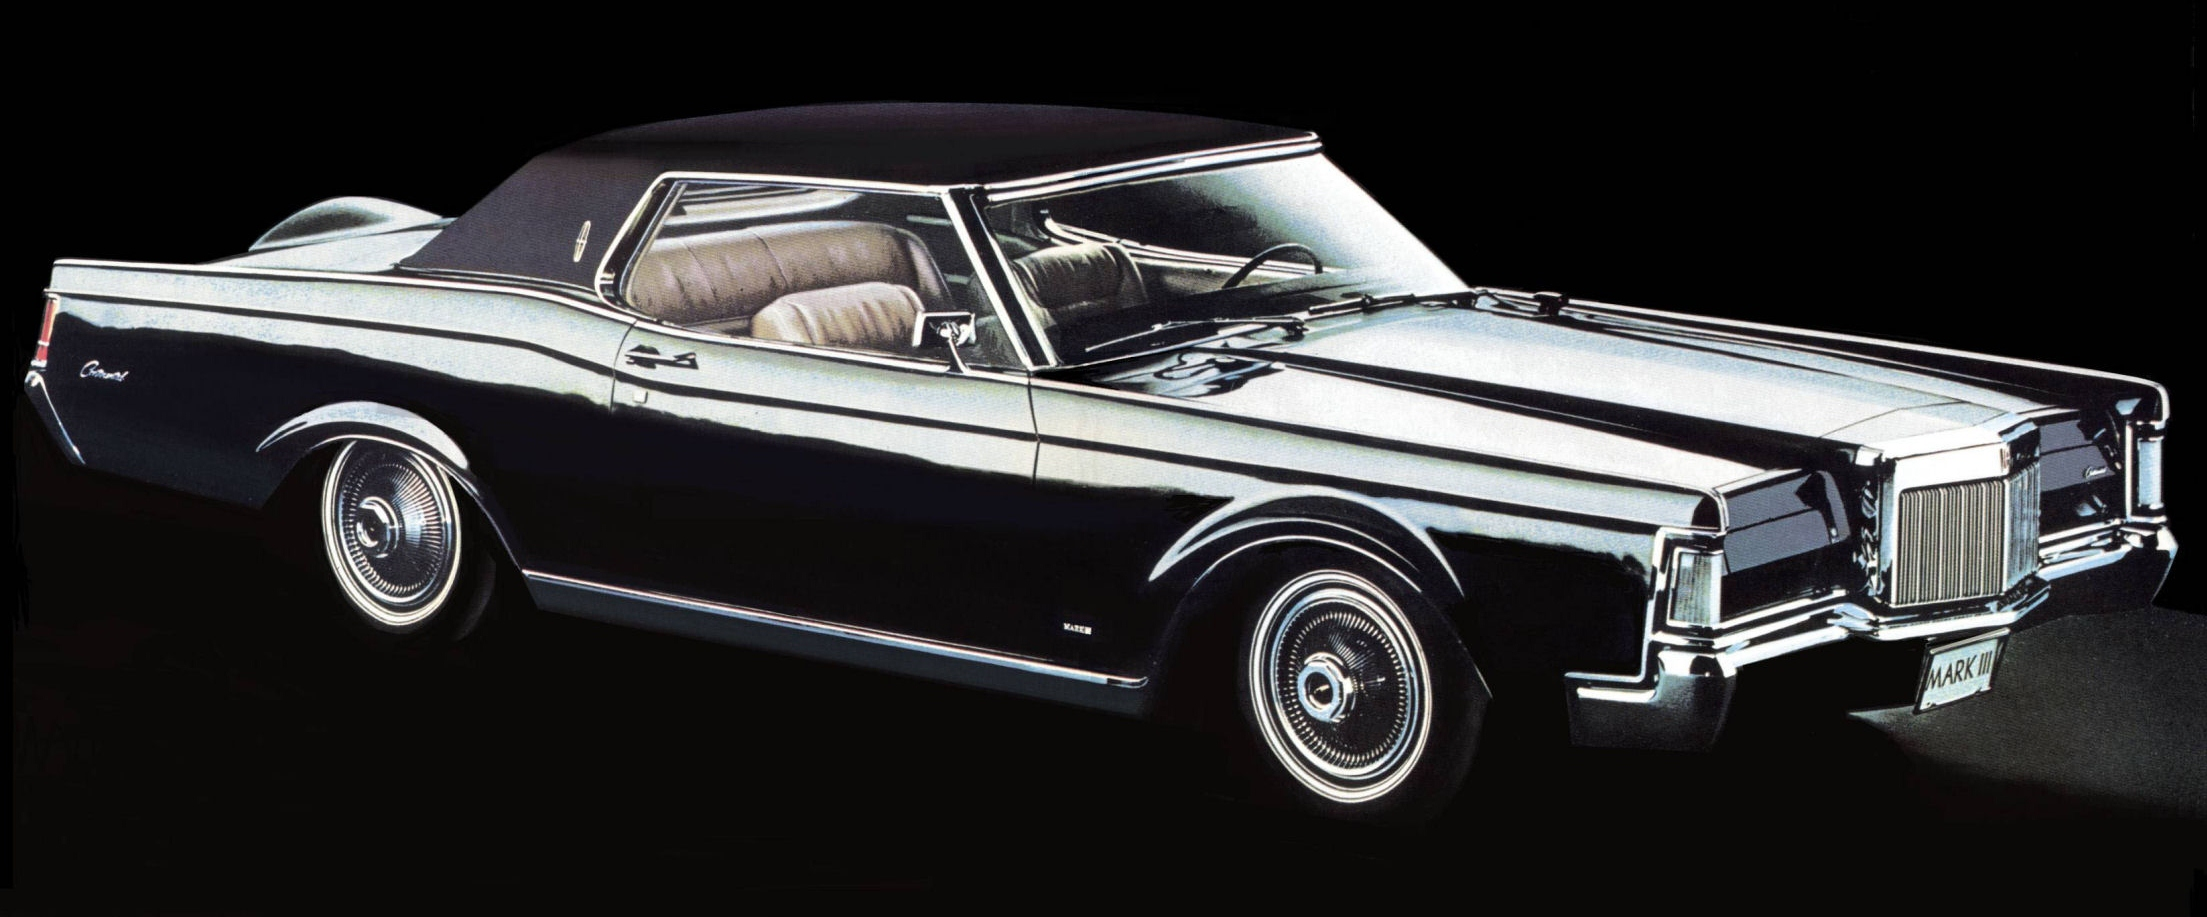 1978 Ford Four Door Craigslisthtml In Unowadopewogithubcom 1970 Impala For Sale Craigslist Source Code Search Engine